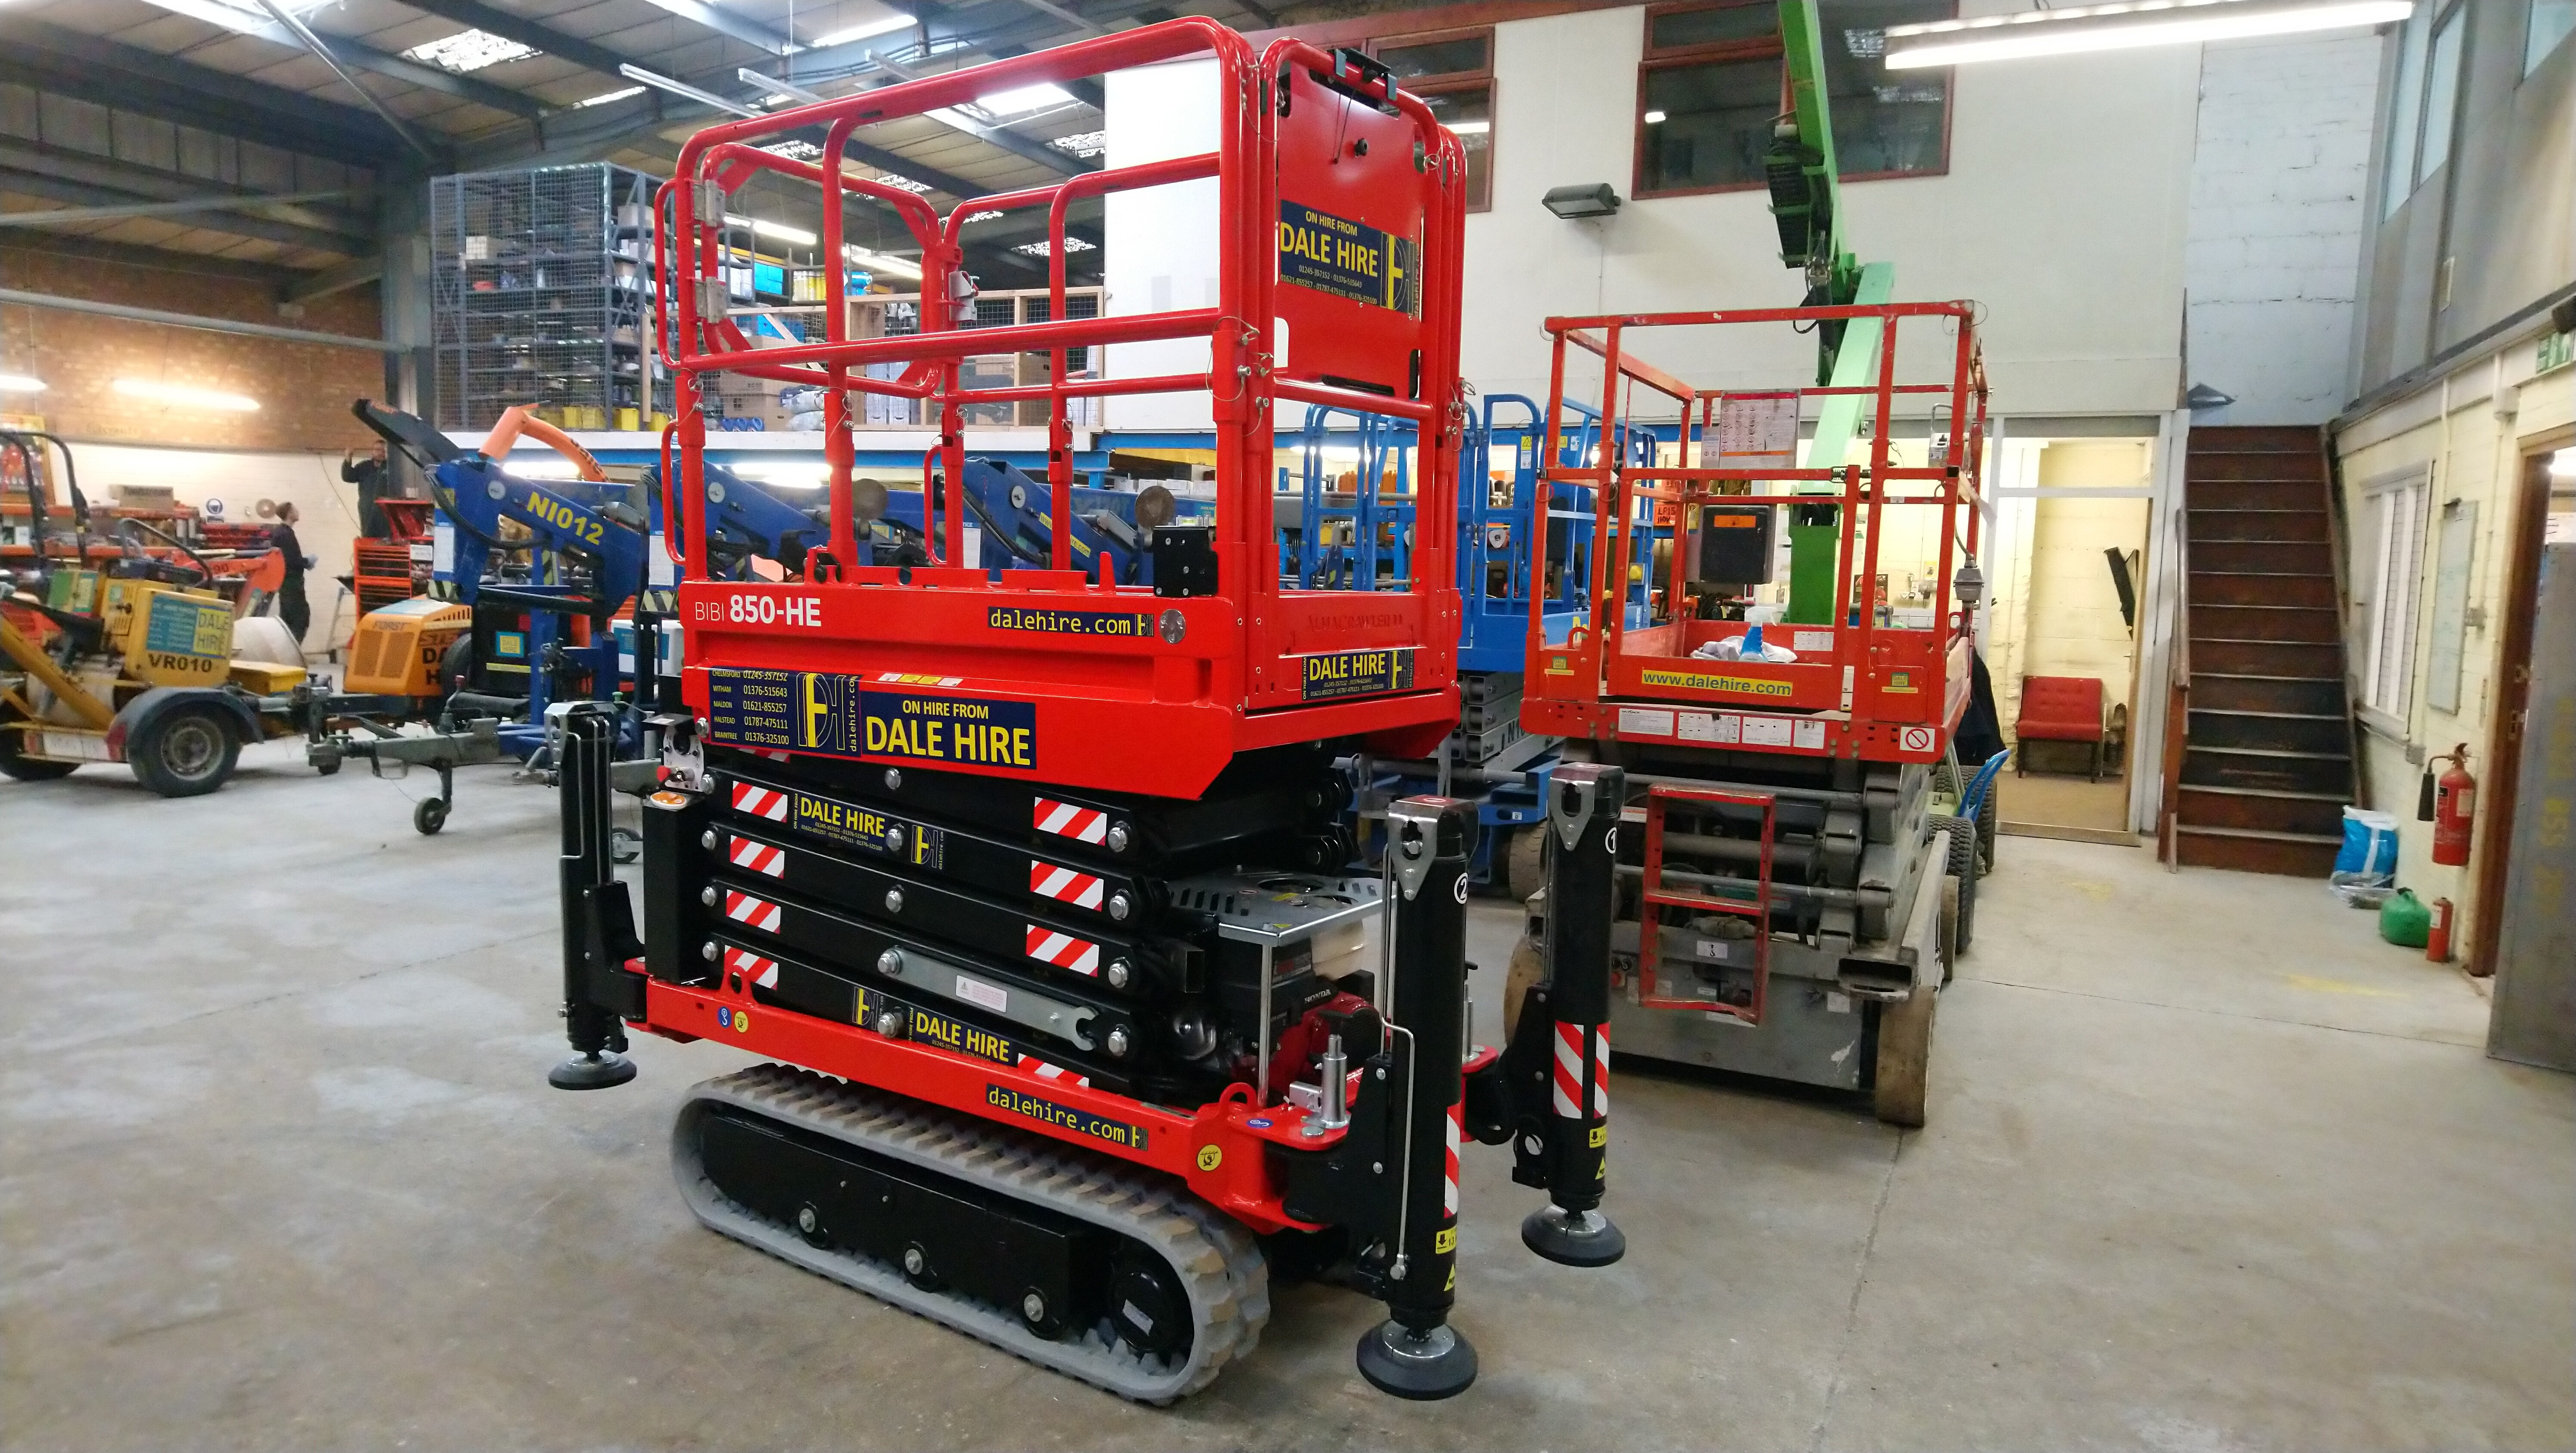 Tracked Scissor Lift Bi-level Bibi 850-HE